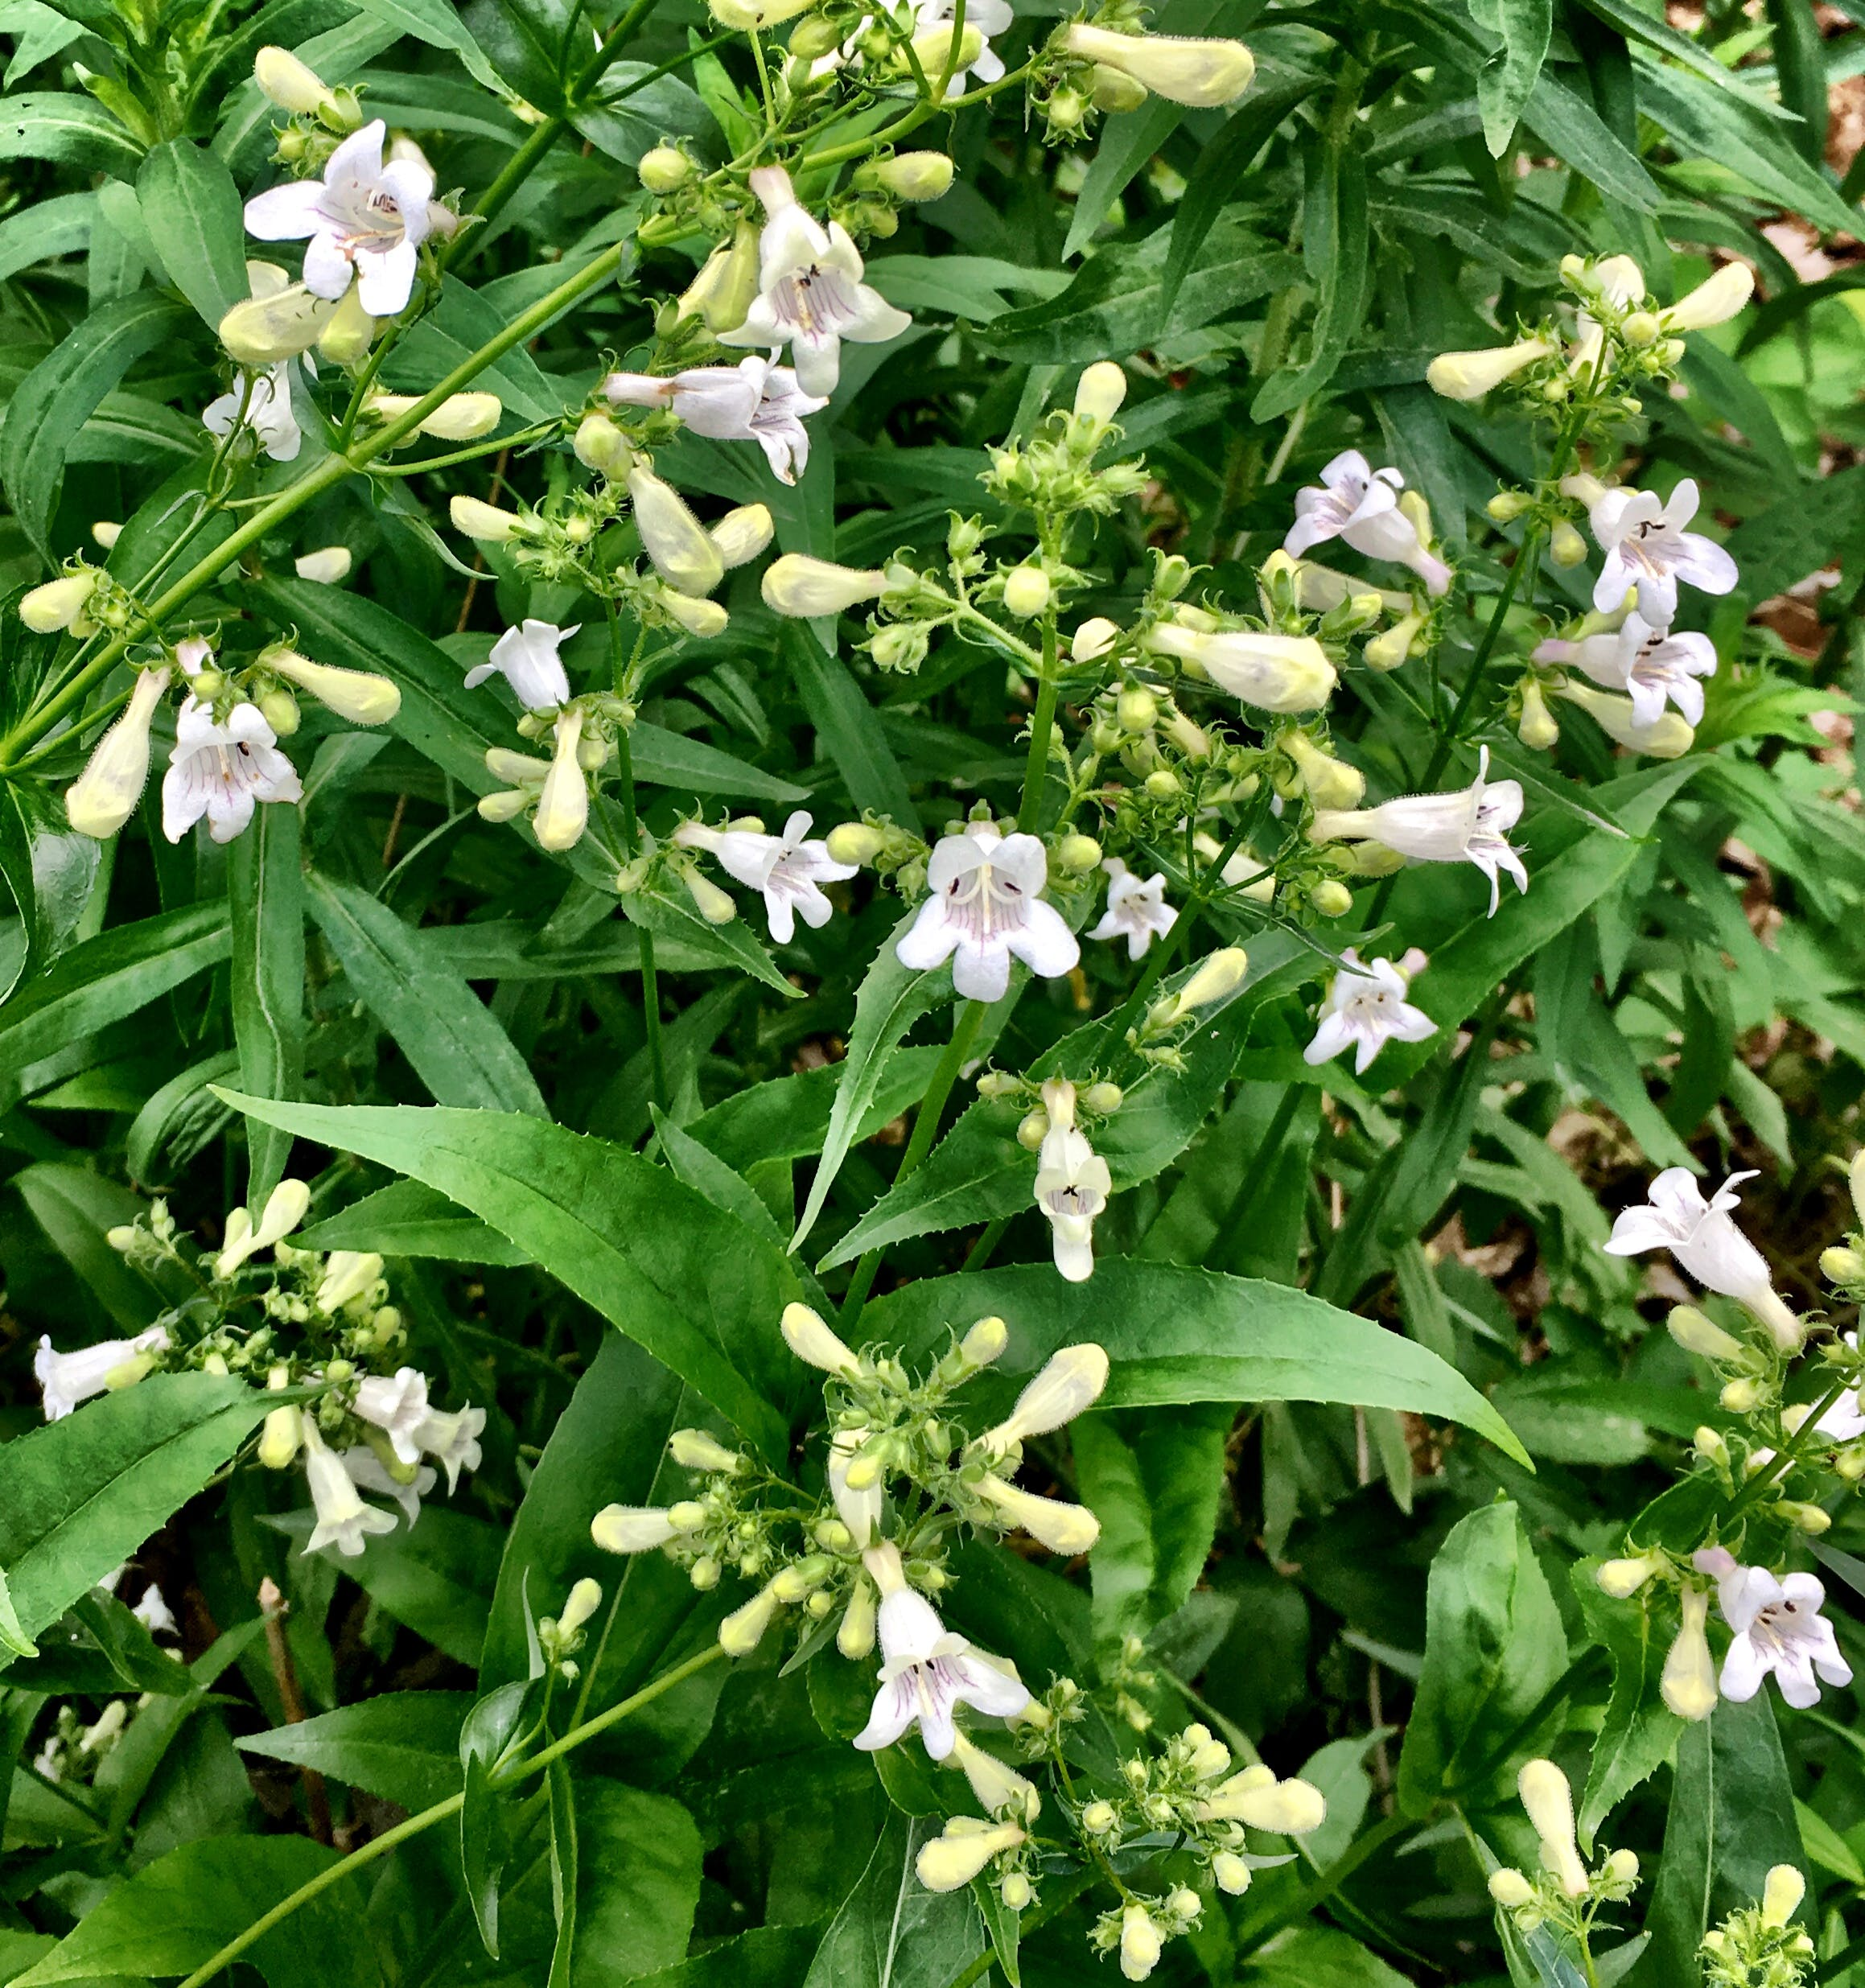 Penstemon digitalis blooming in June - This native plant attracts bees and hummingbirds